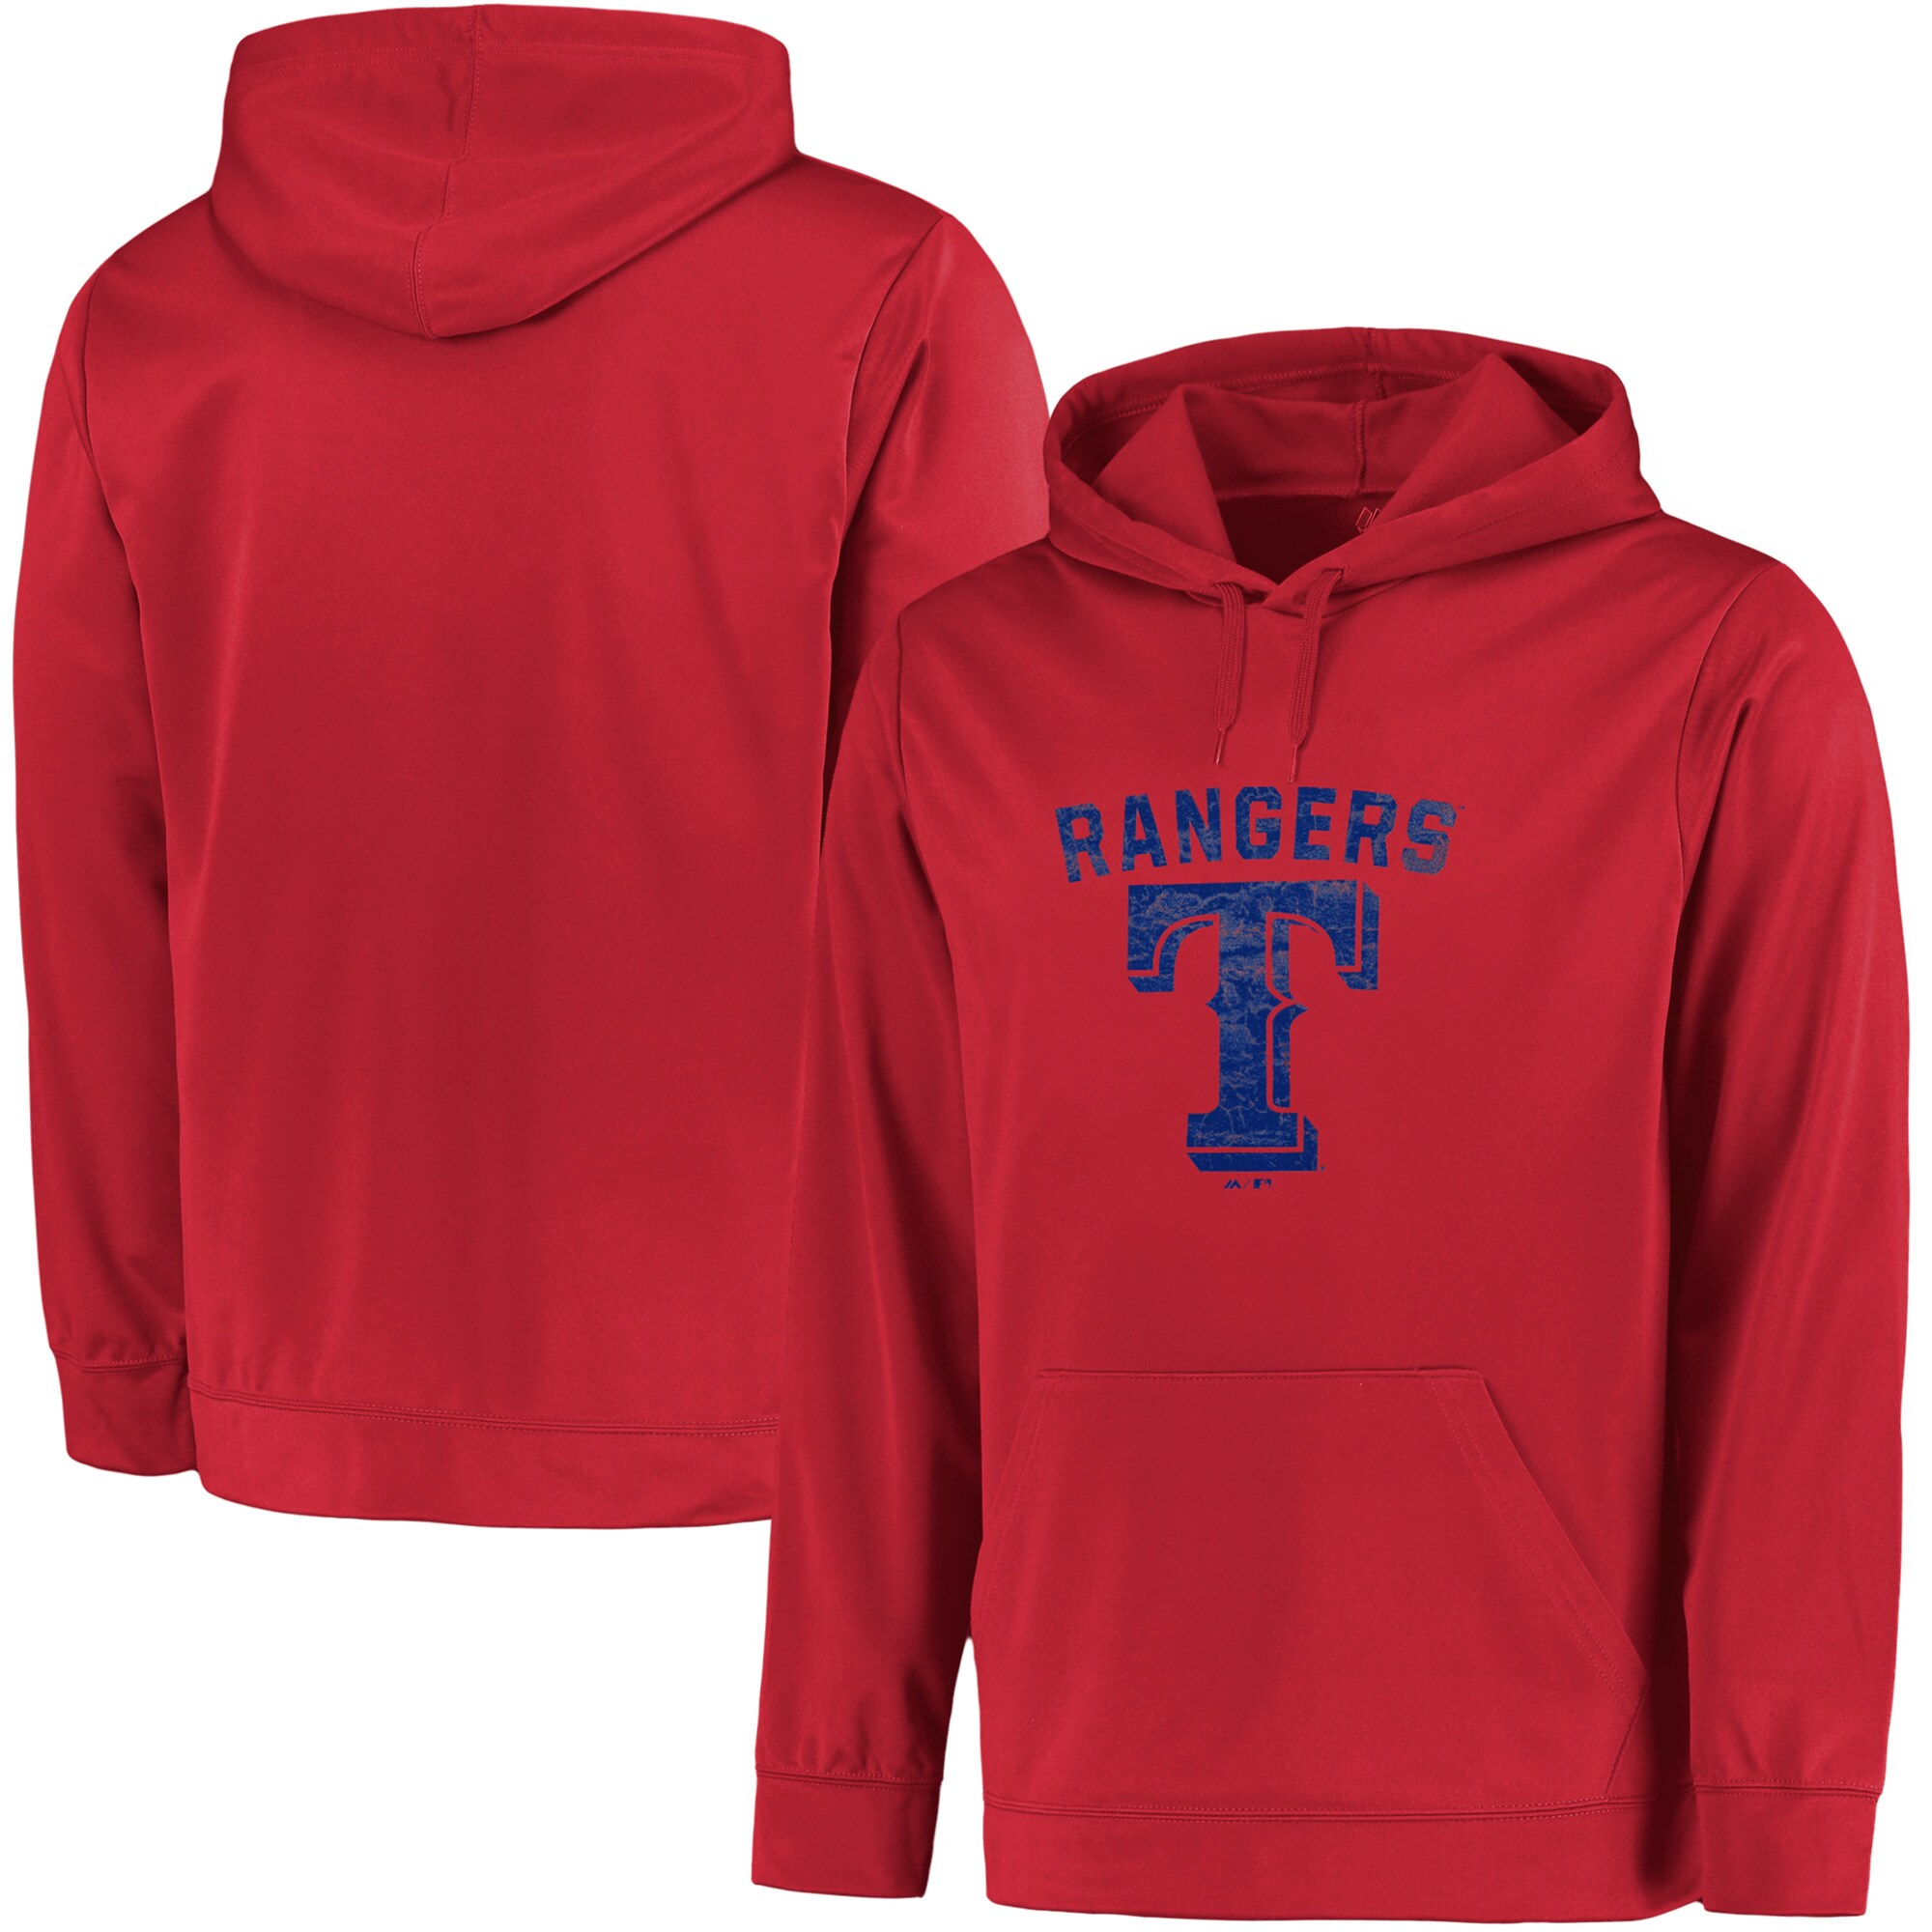 Texas Rangers Majestic Big & Tall Distressed Hoodie - Red